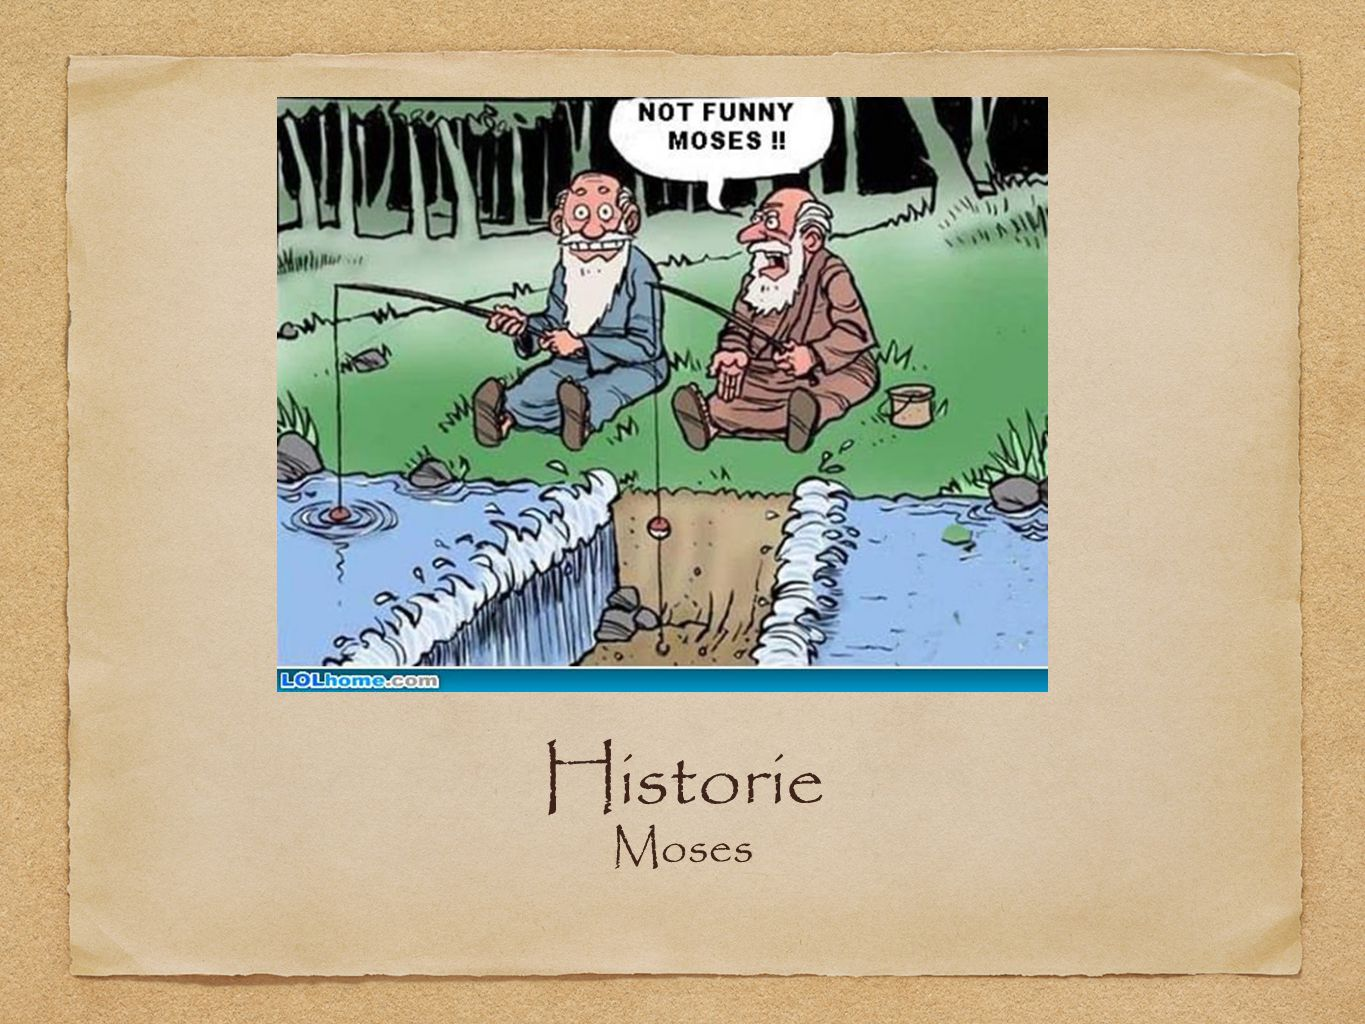 Historie Moses